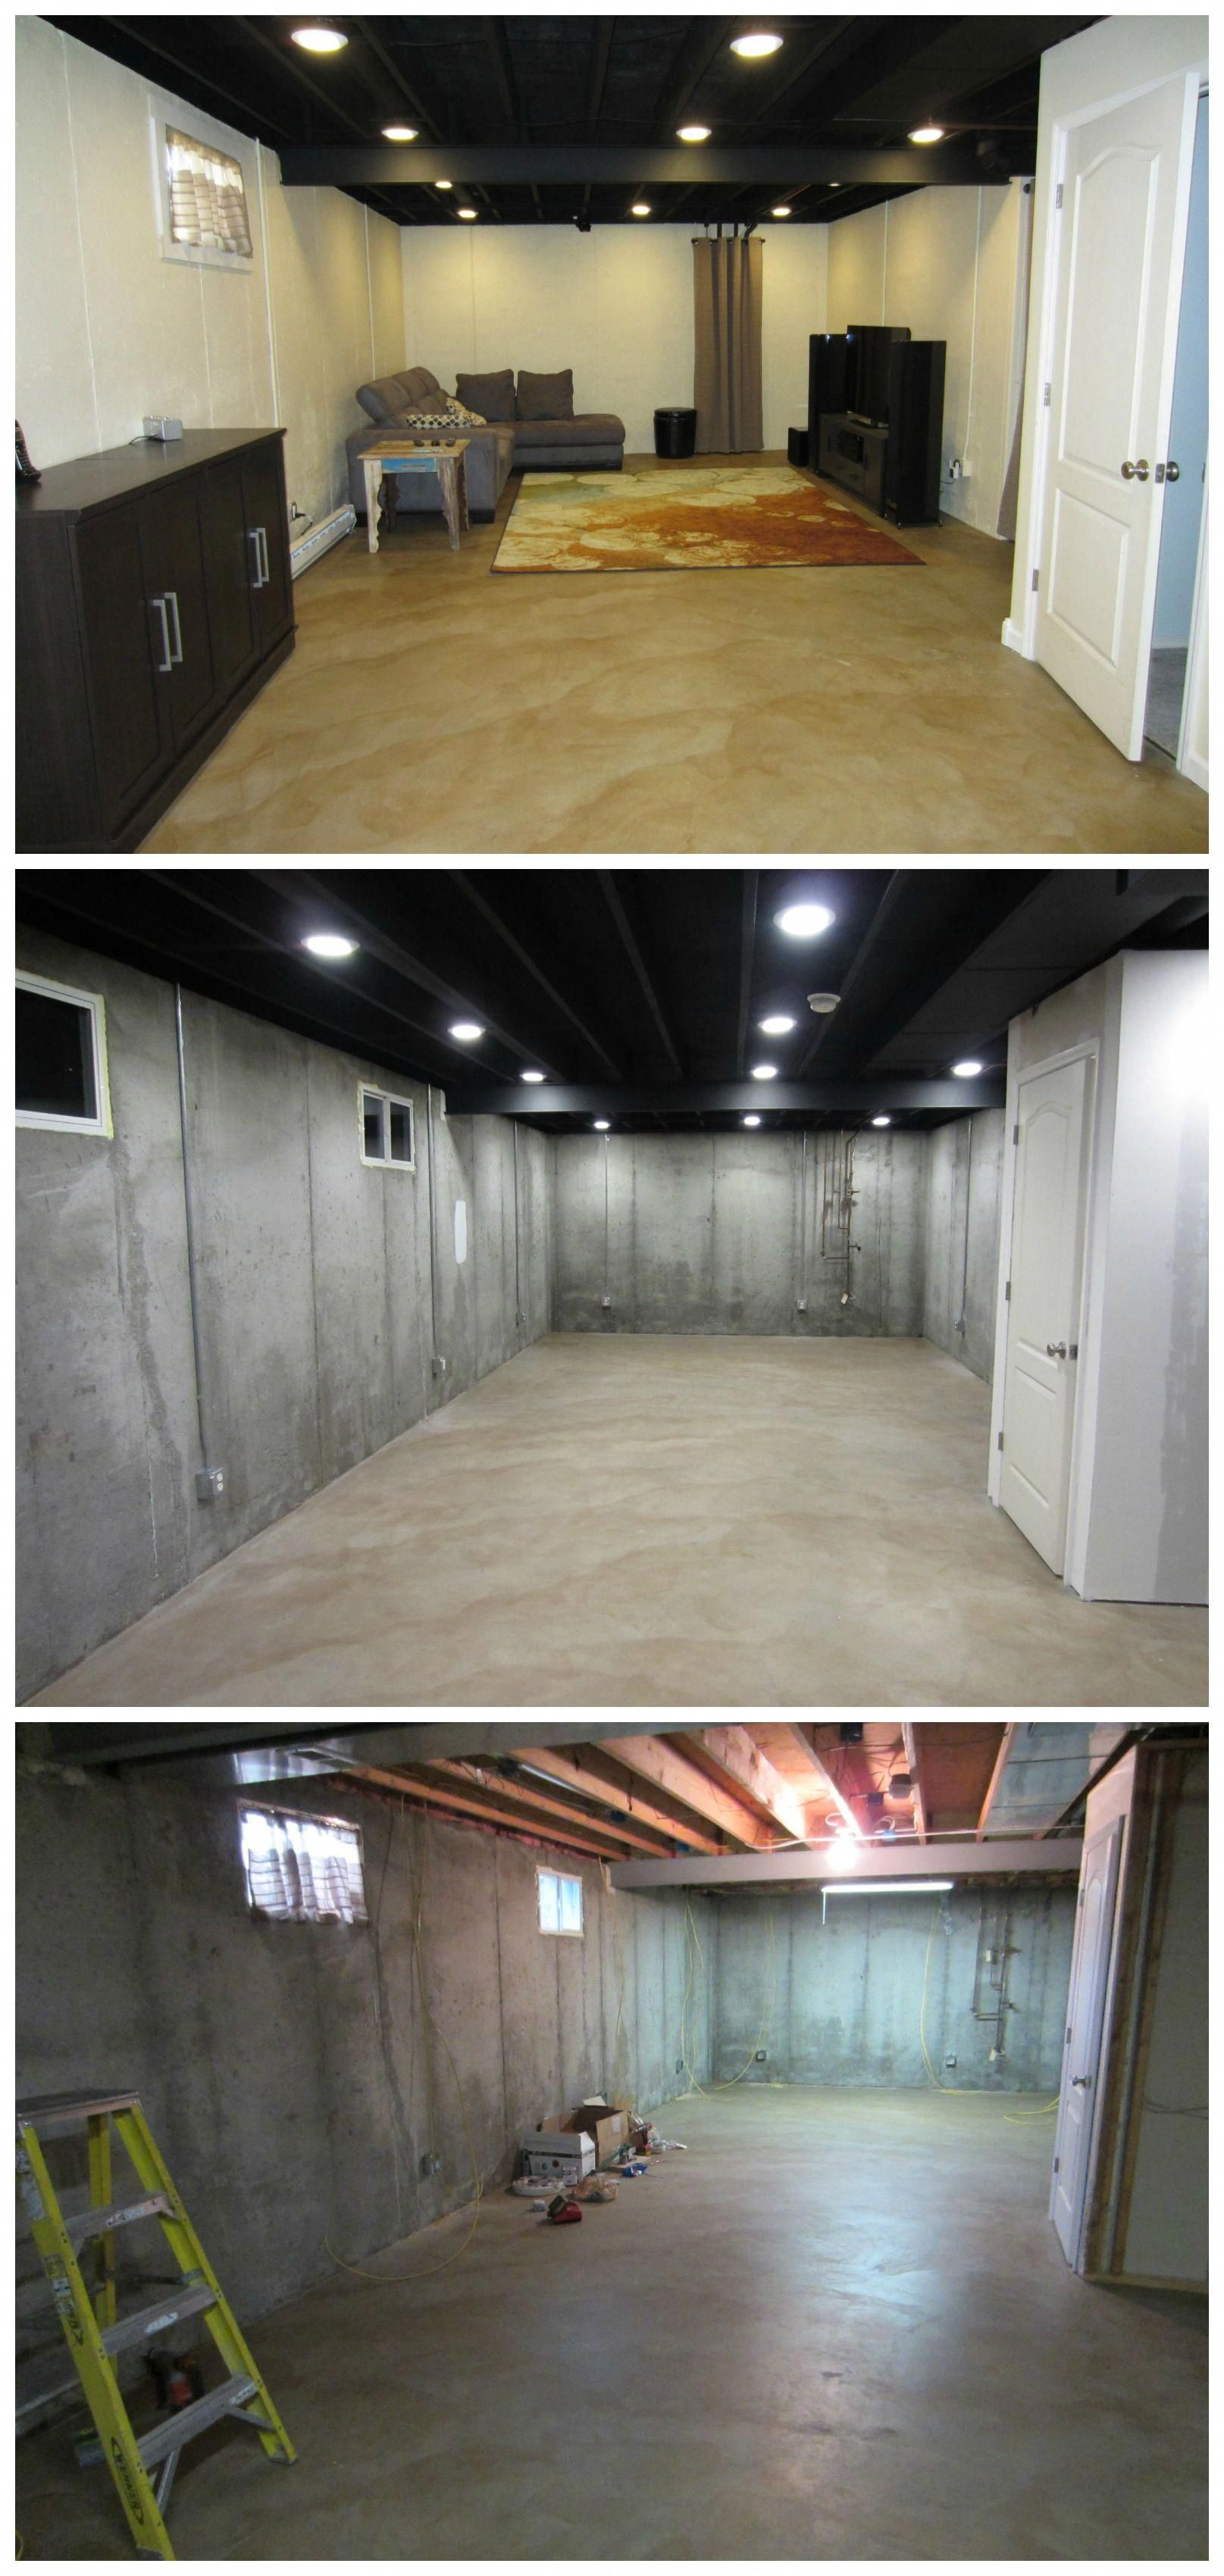 PRICES FOR THE DEVELOPMENT OF A BASEMENT Basement